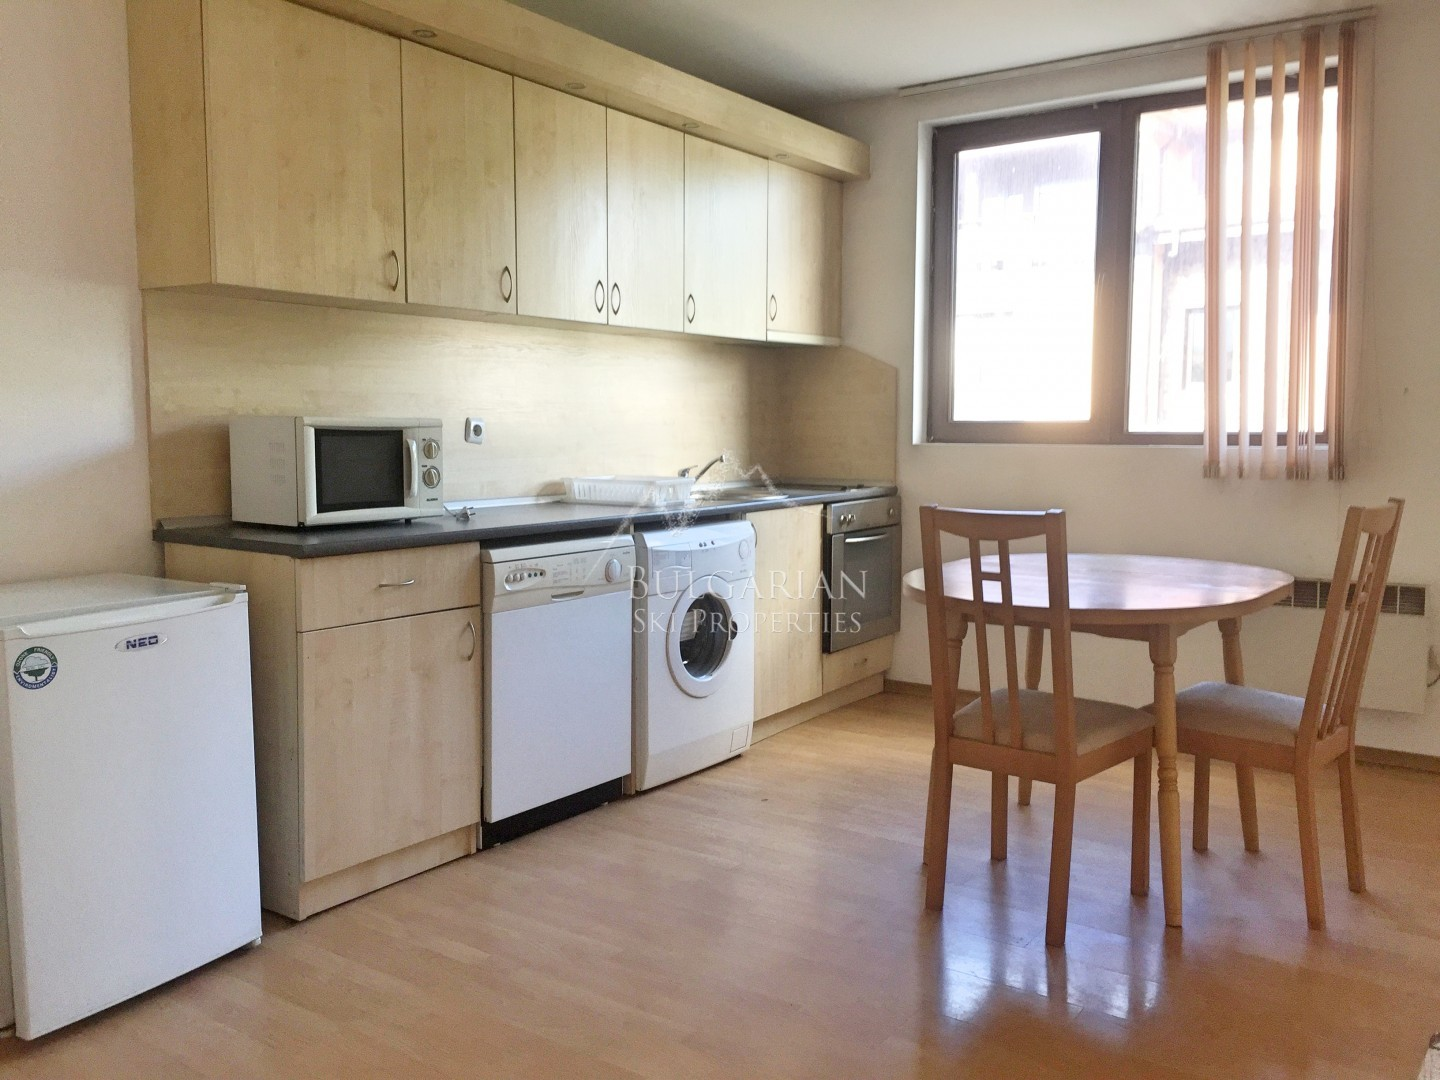 Bansko: spacious furnished two-bedroom apartment for sale